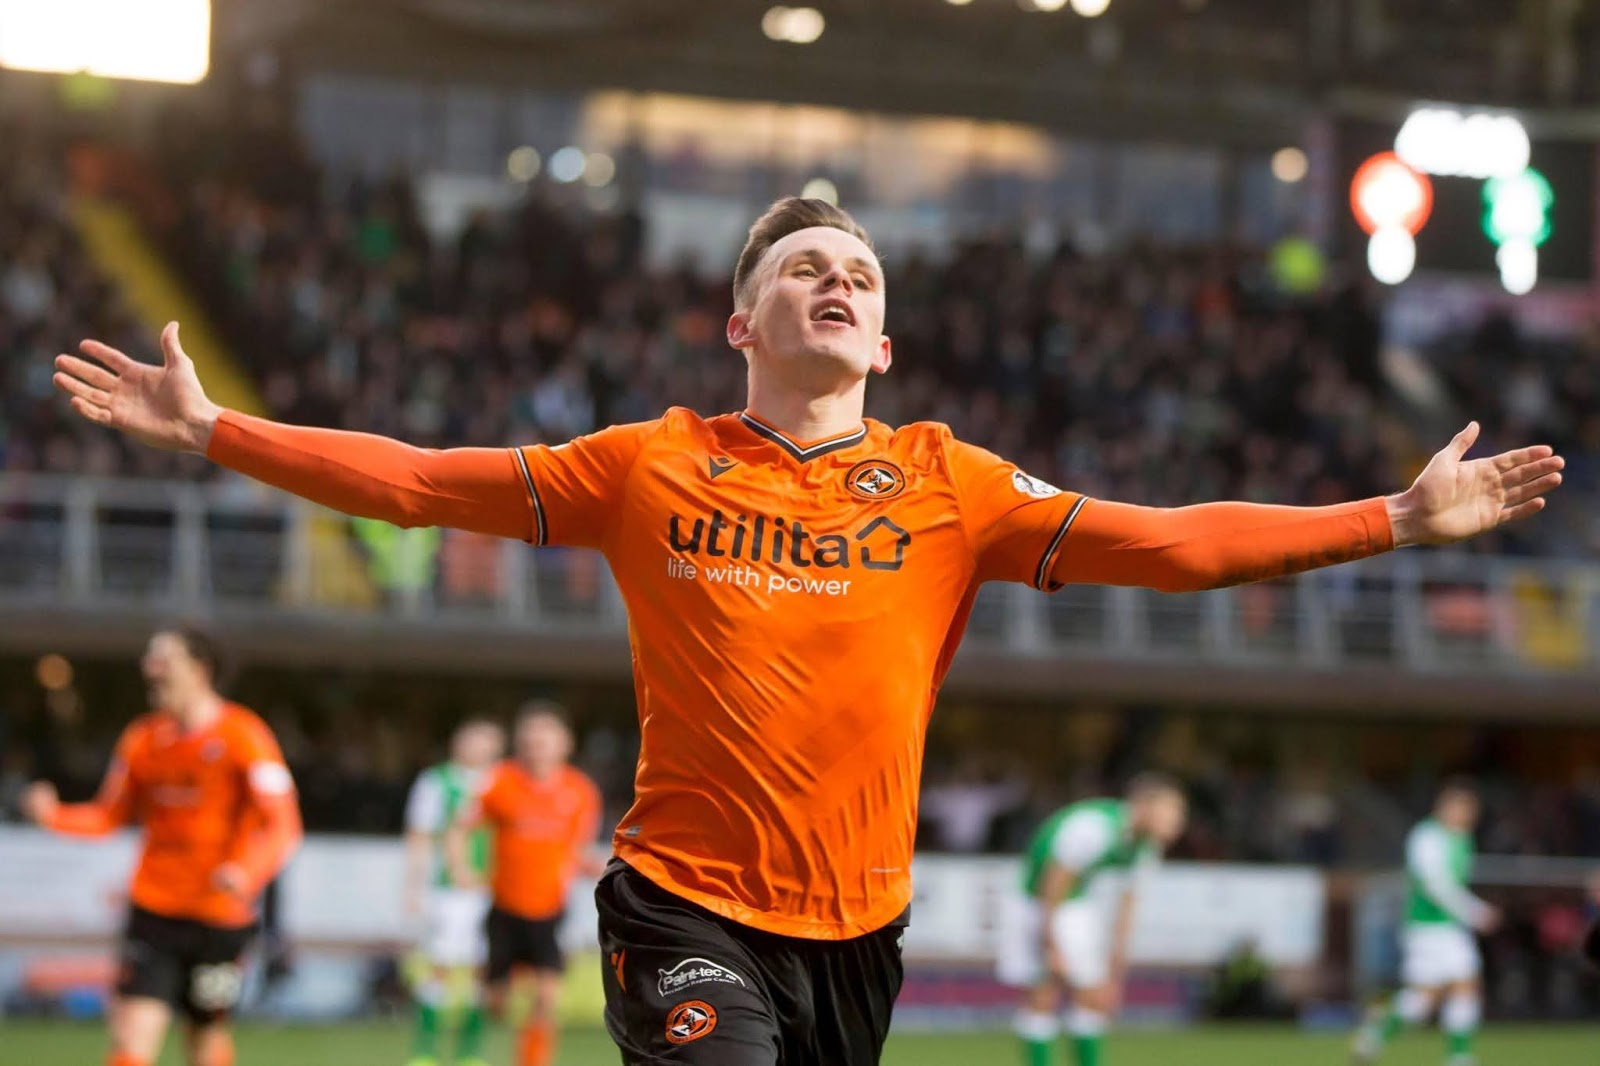 Rangers 'could announce' striker imminently